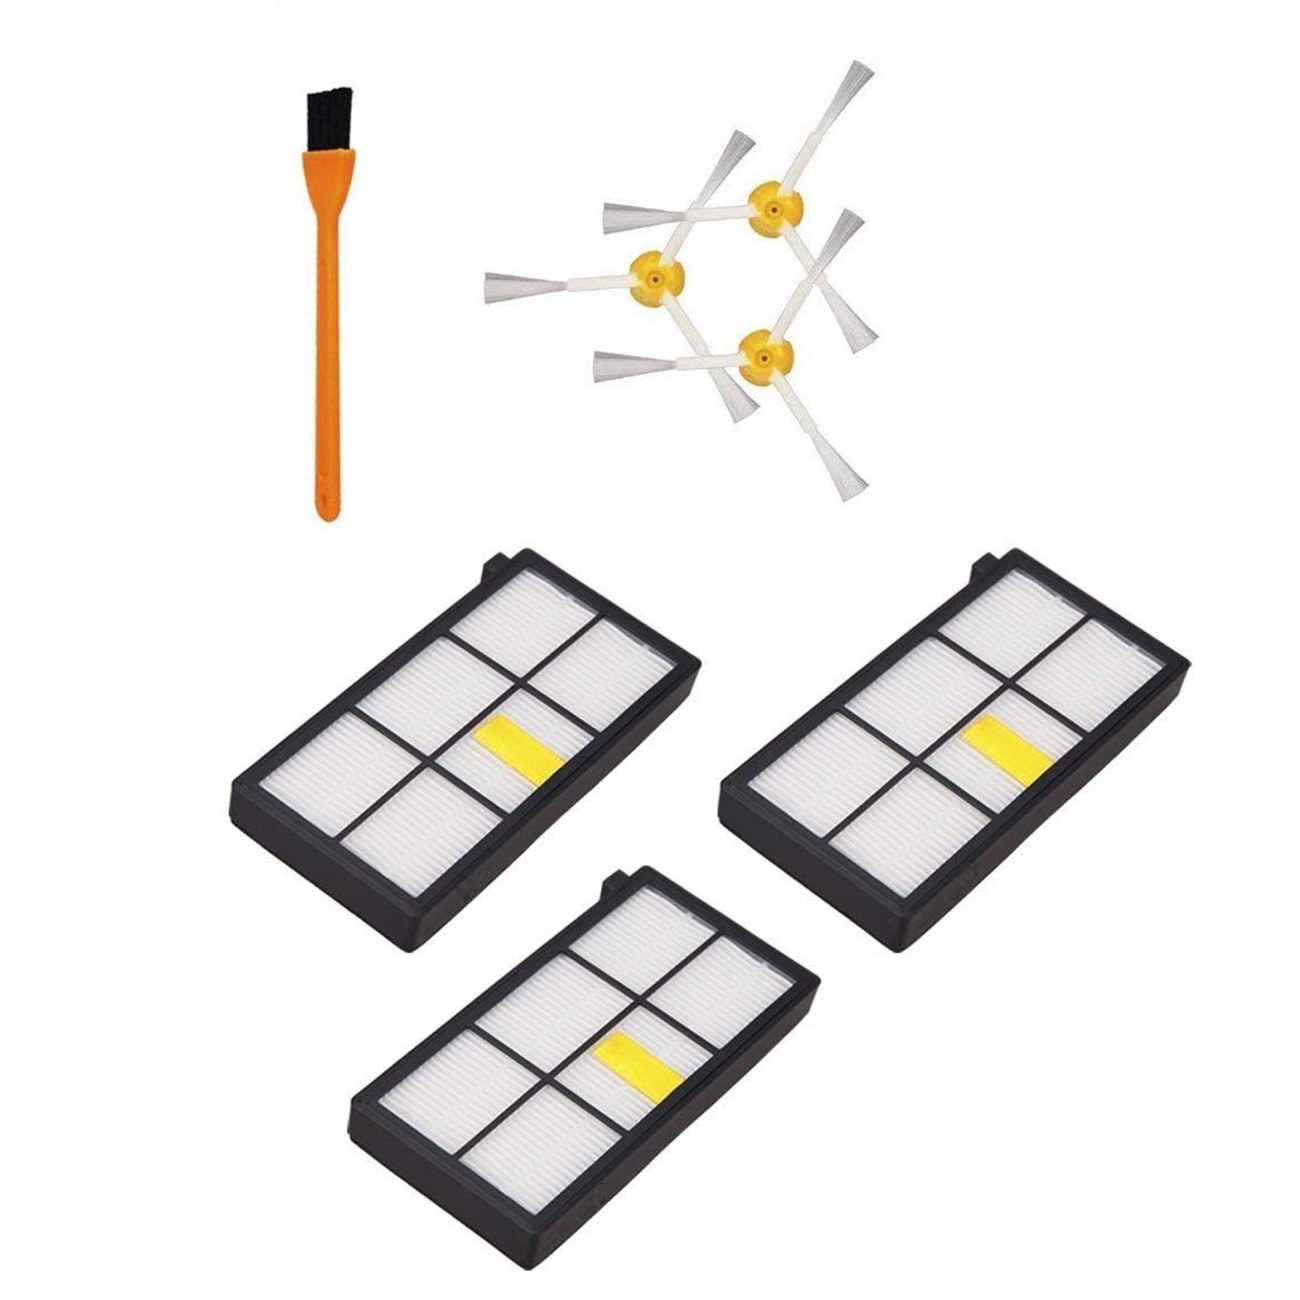 3pcs 980 Hepa Filters Compatible For iRobot Roomba 980 860 880 870 Robotic Vacuum Cleaner and 3pcs Roomba Side Brushes (800 90